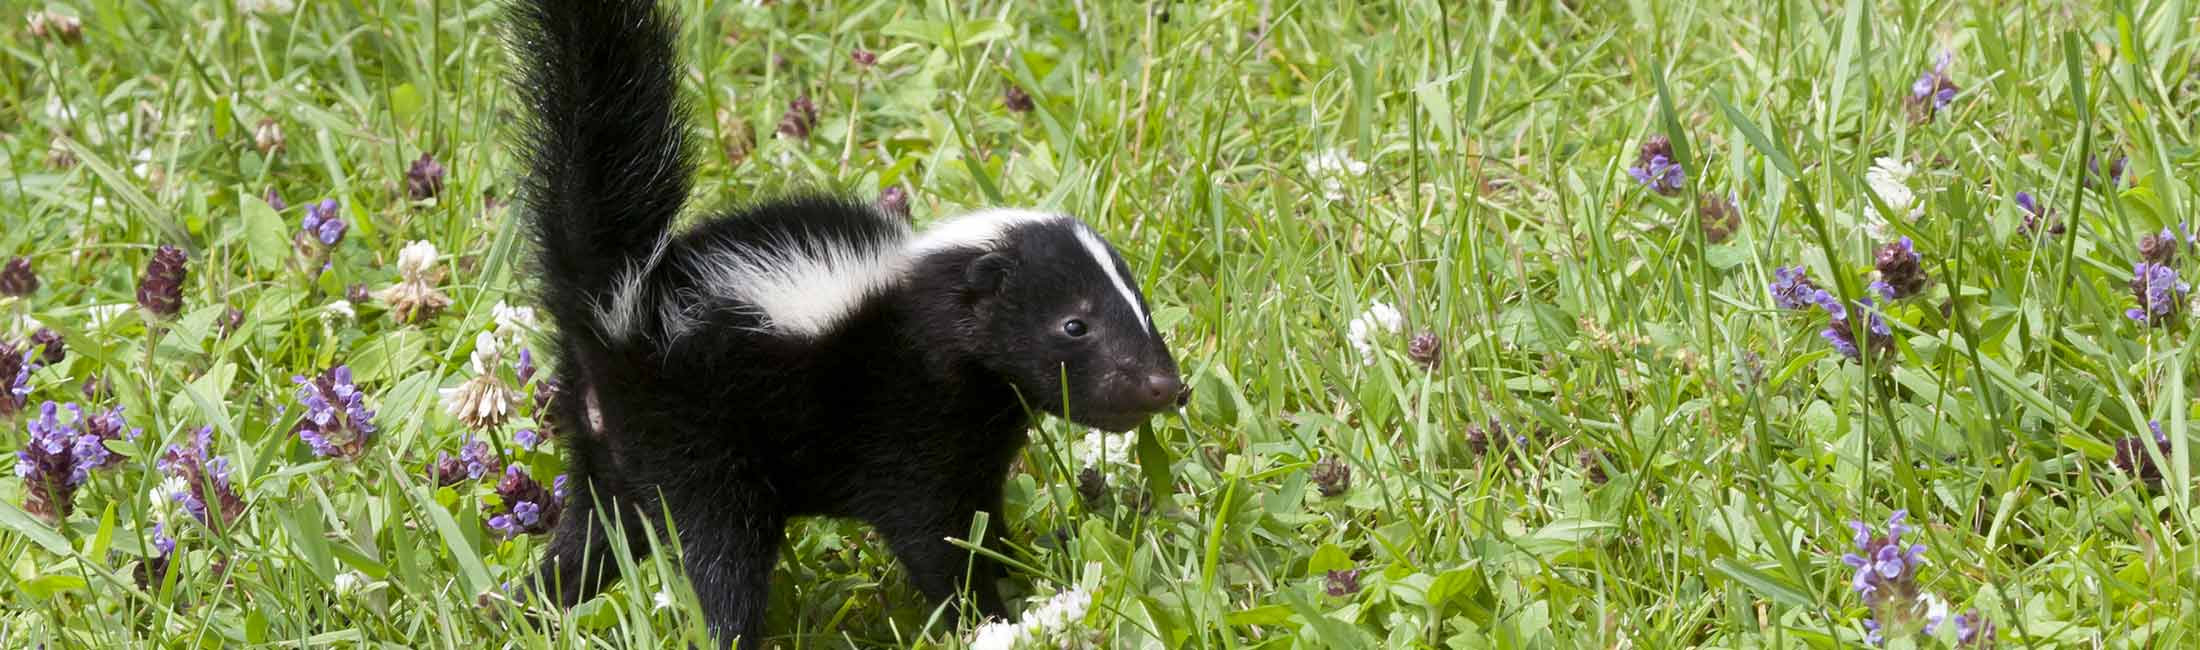 Skunk in Missoula, Montana